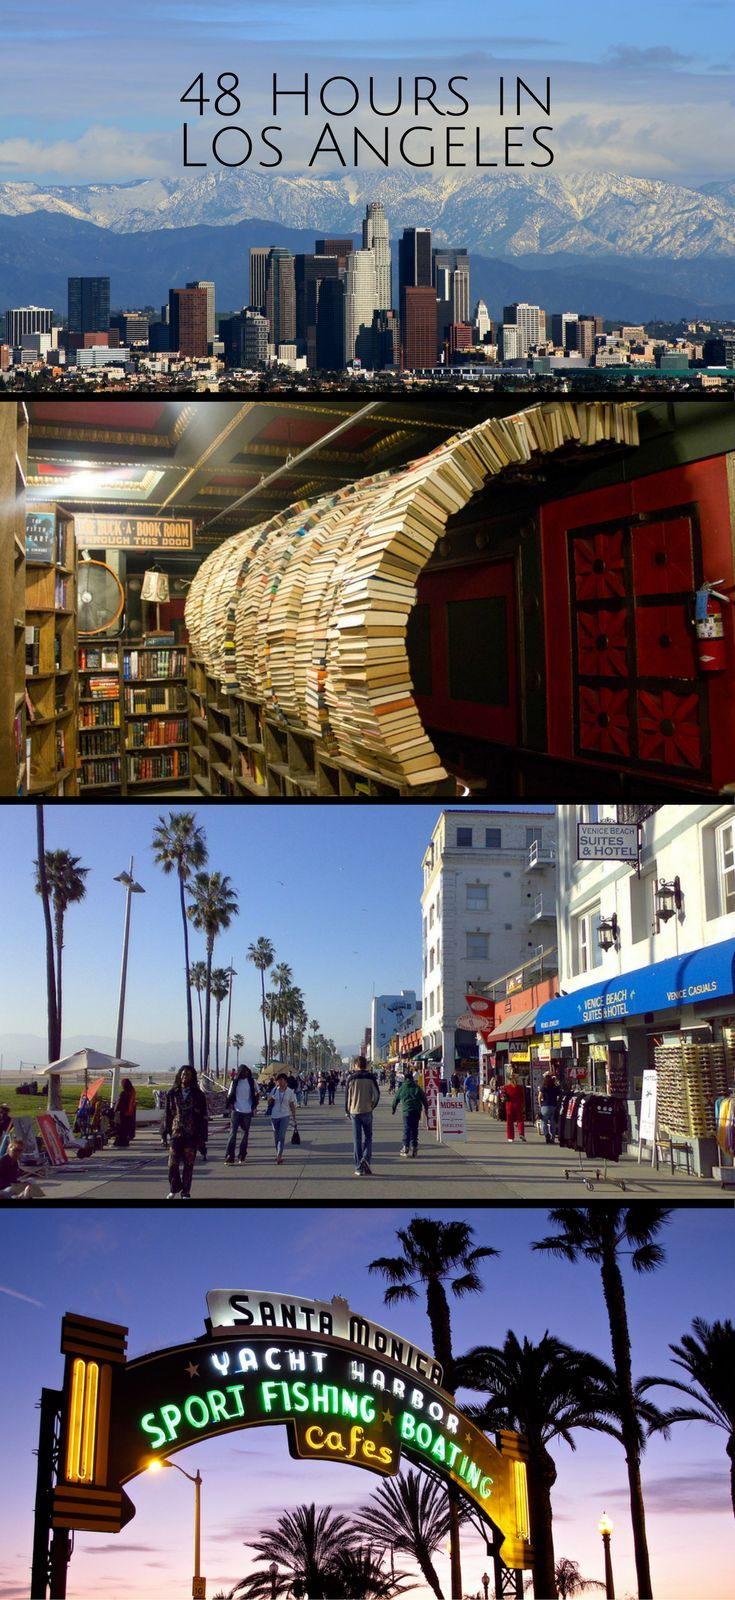 From the Walk of Fame and Venice Beach, to the Santa Monica Pier.